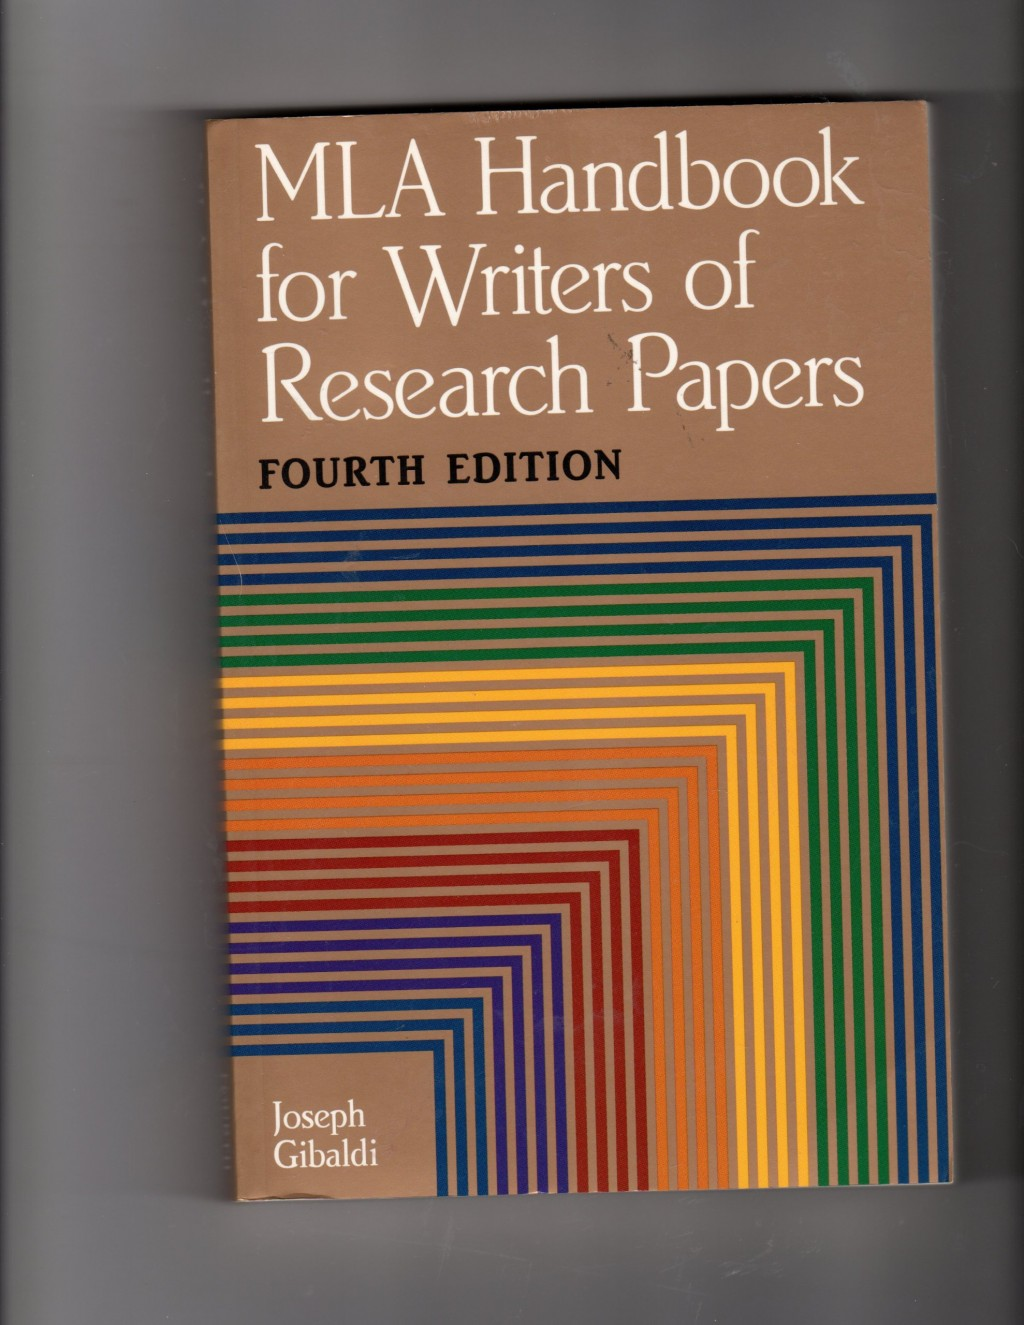 005 According To The Mla Handbook For Writers Of Researchs Sixth Edition 91or7esc2gl Marvelous Research Papers A Thesis Statement Is Large